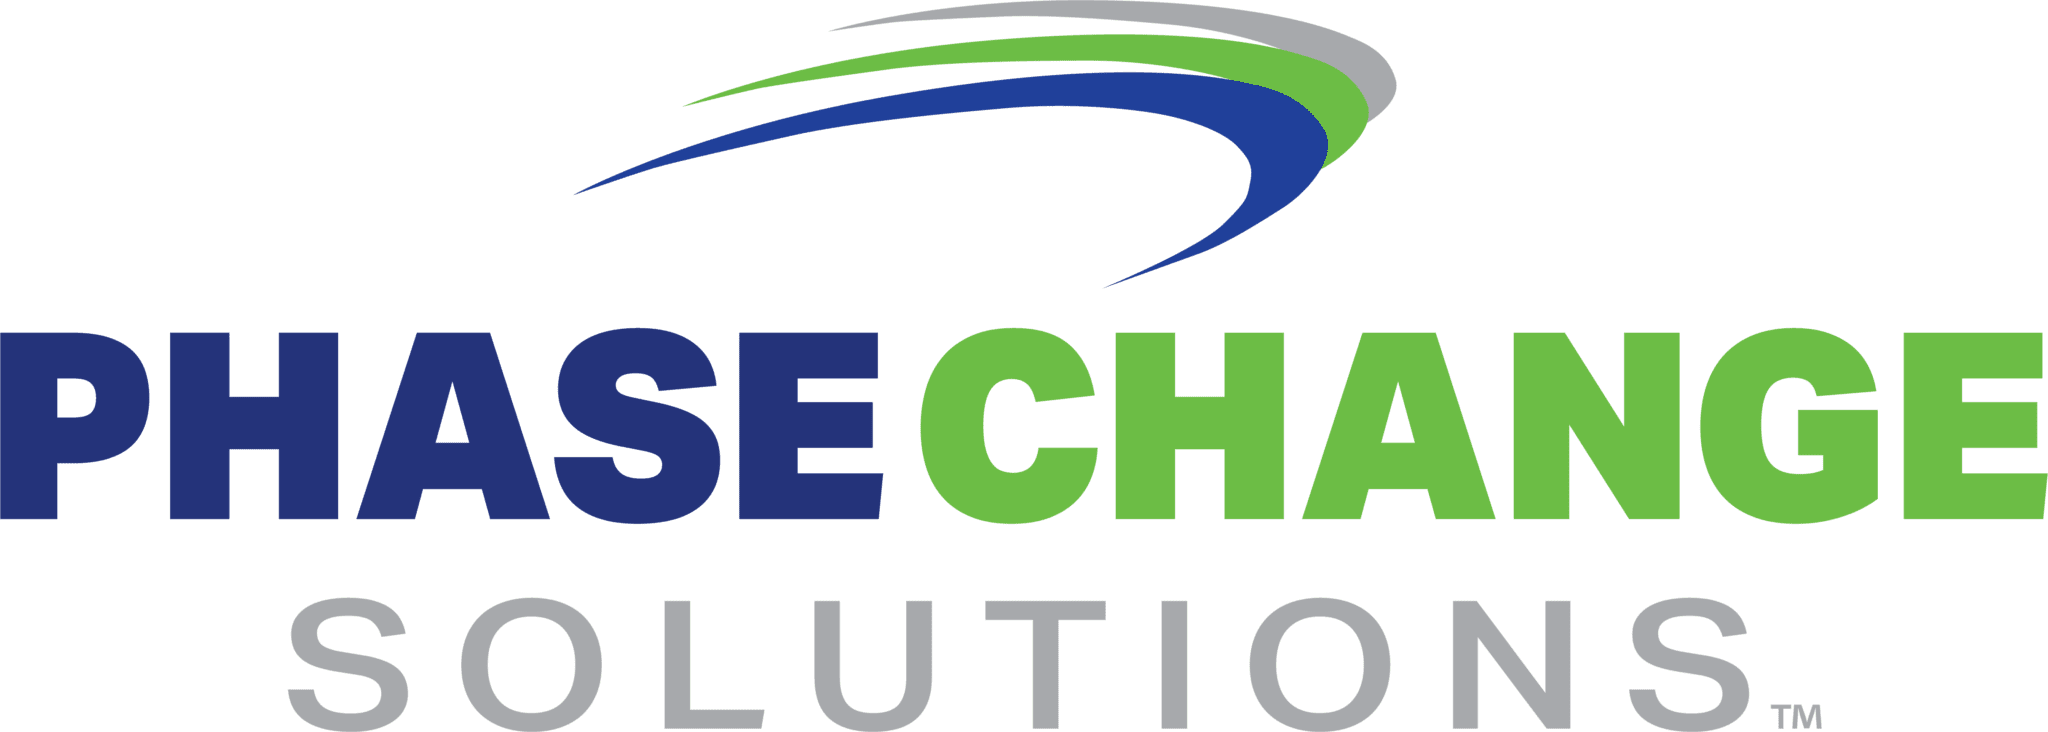 Phase Change Solutions logo